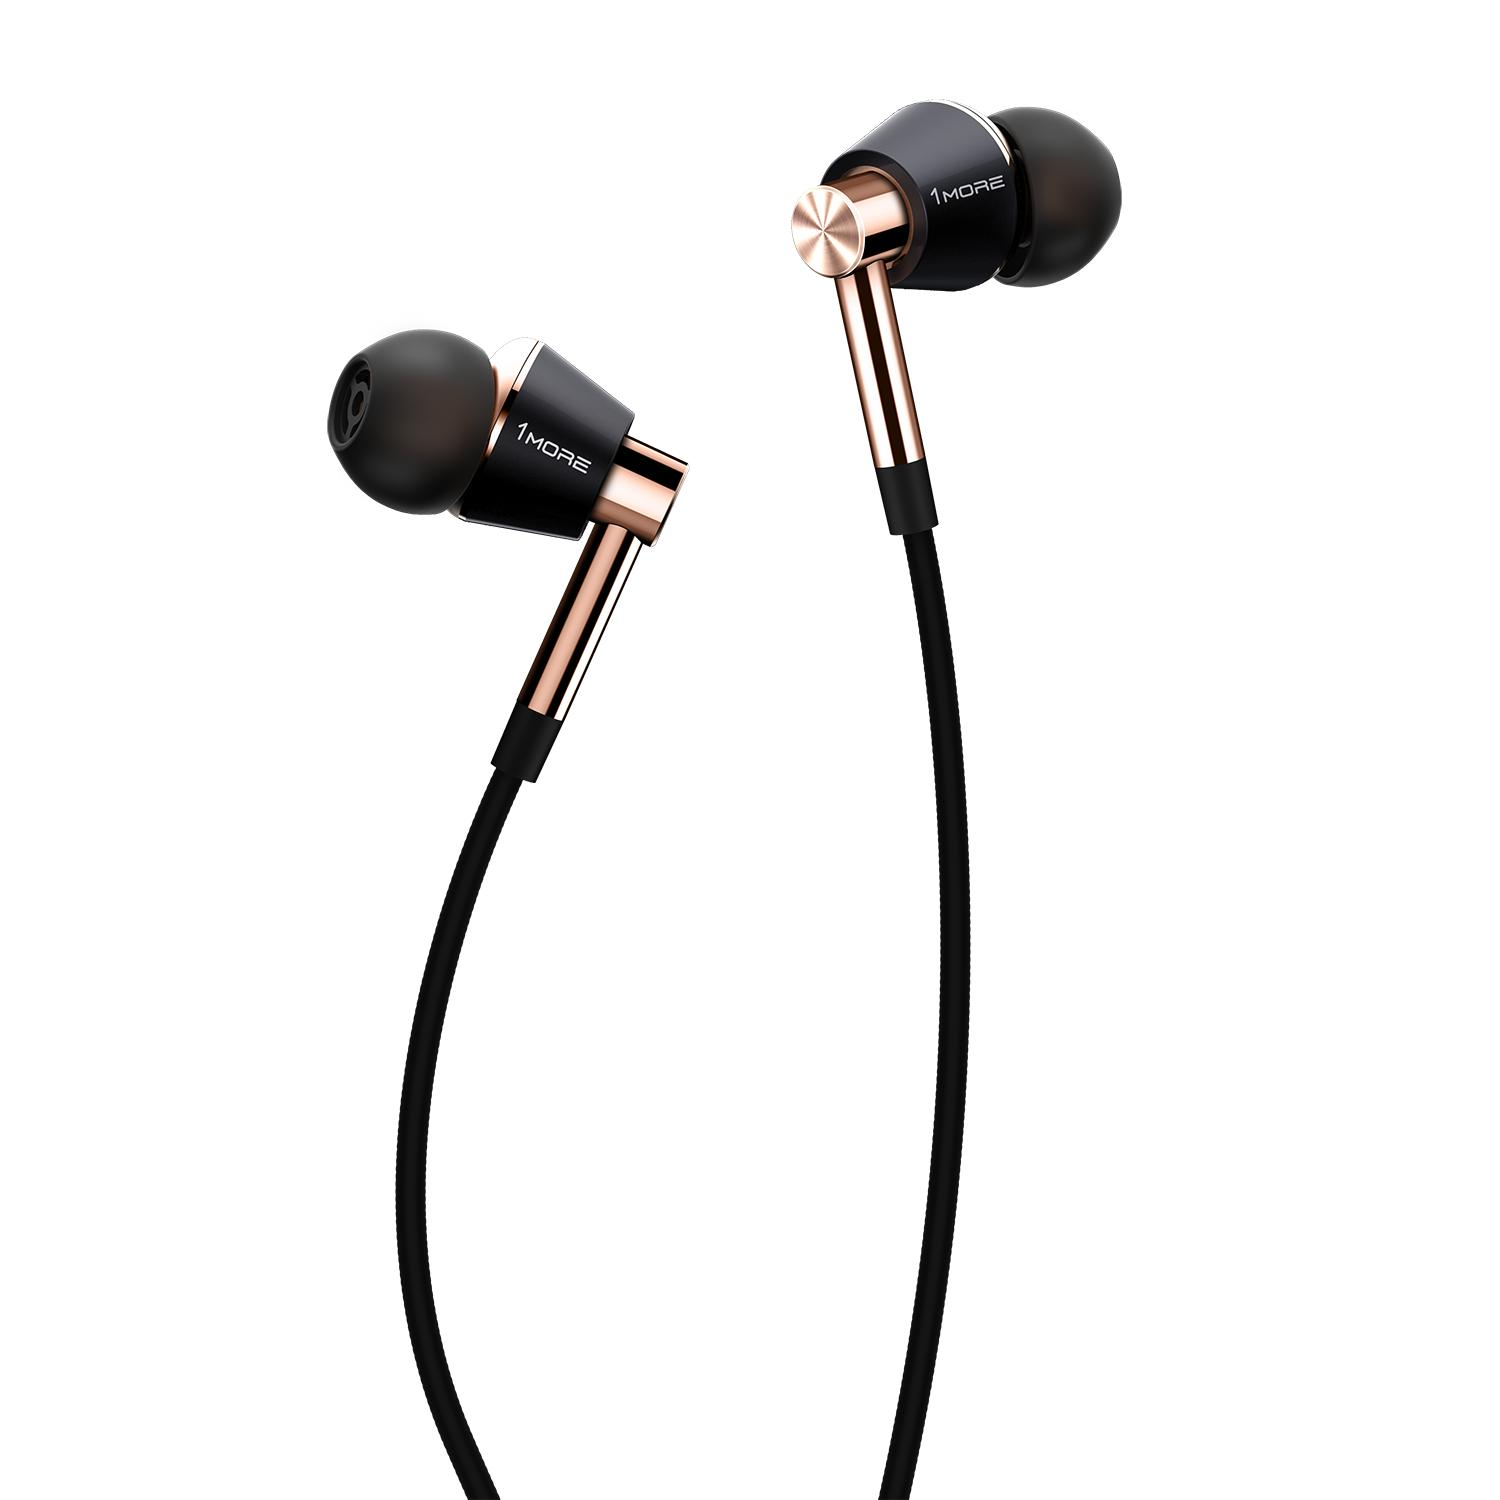 Review 1More E1001 Triple Driver In Ear Headphones With Apple Ios And Android Compatible Microphone And Remote On Singapore